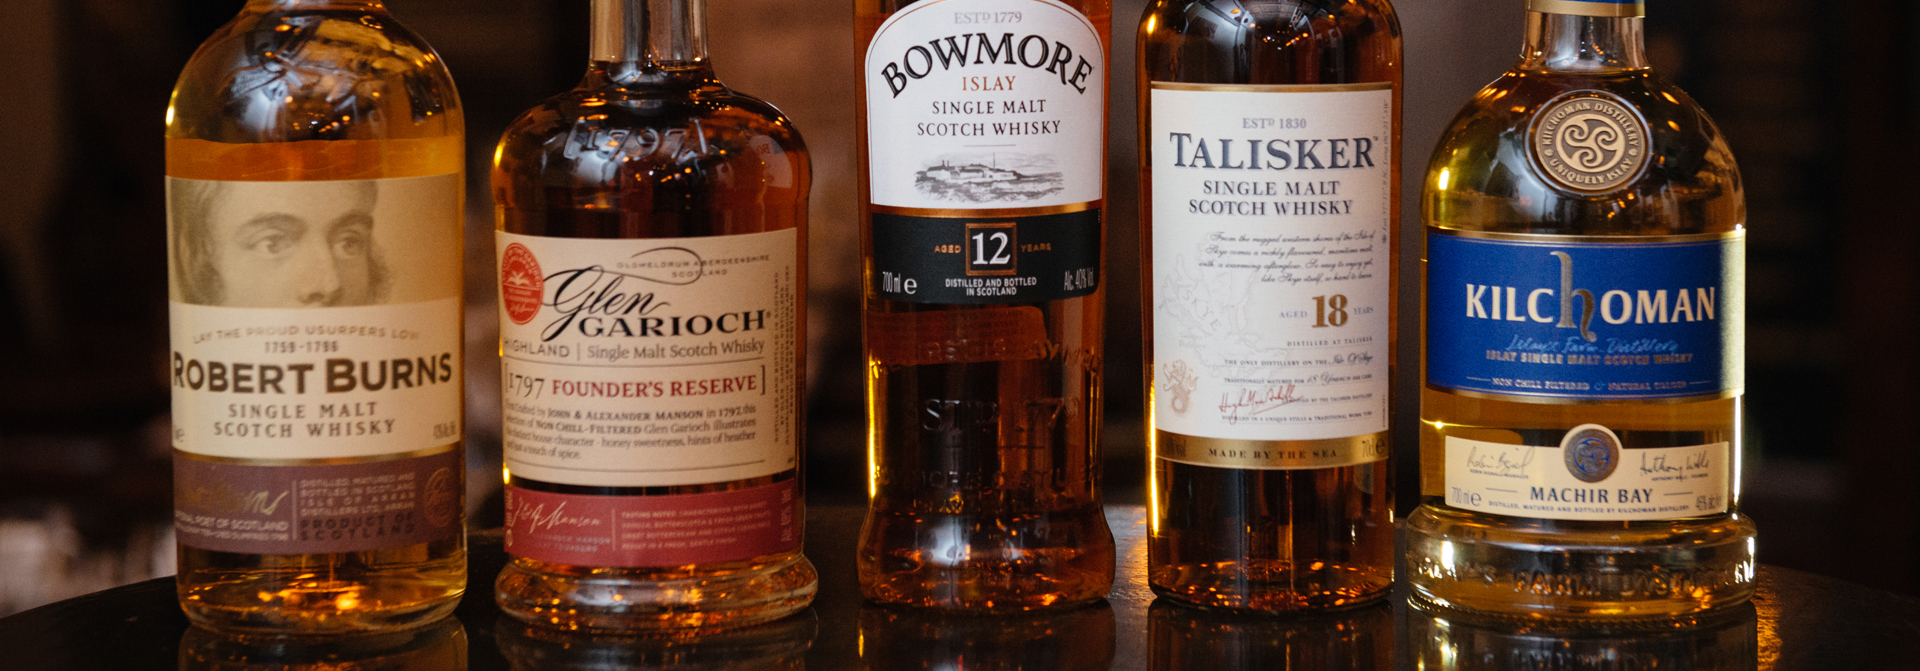 the tasters club whisky tasting robert burns arran glengarioch bowmore talisker kilchoman avalon